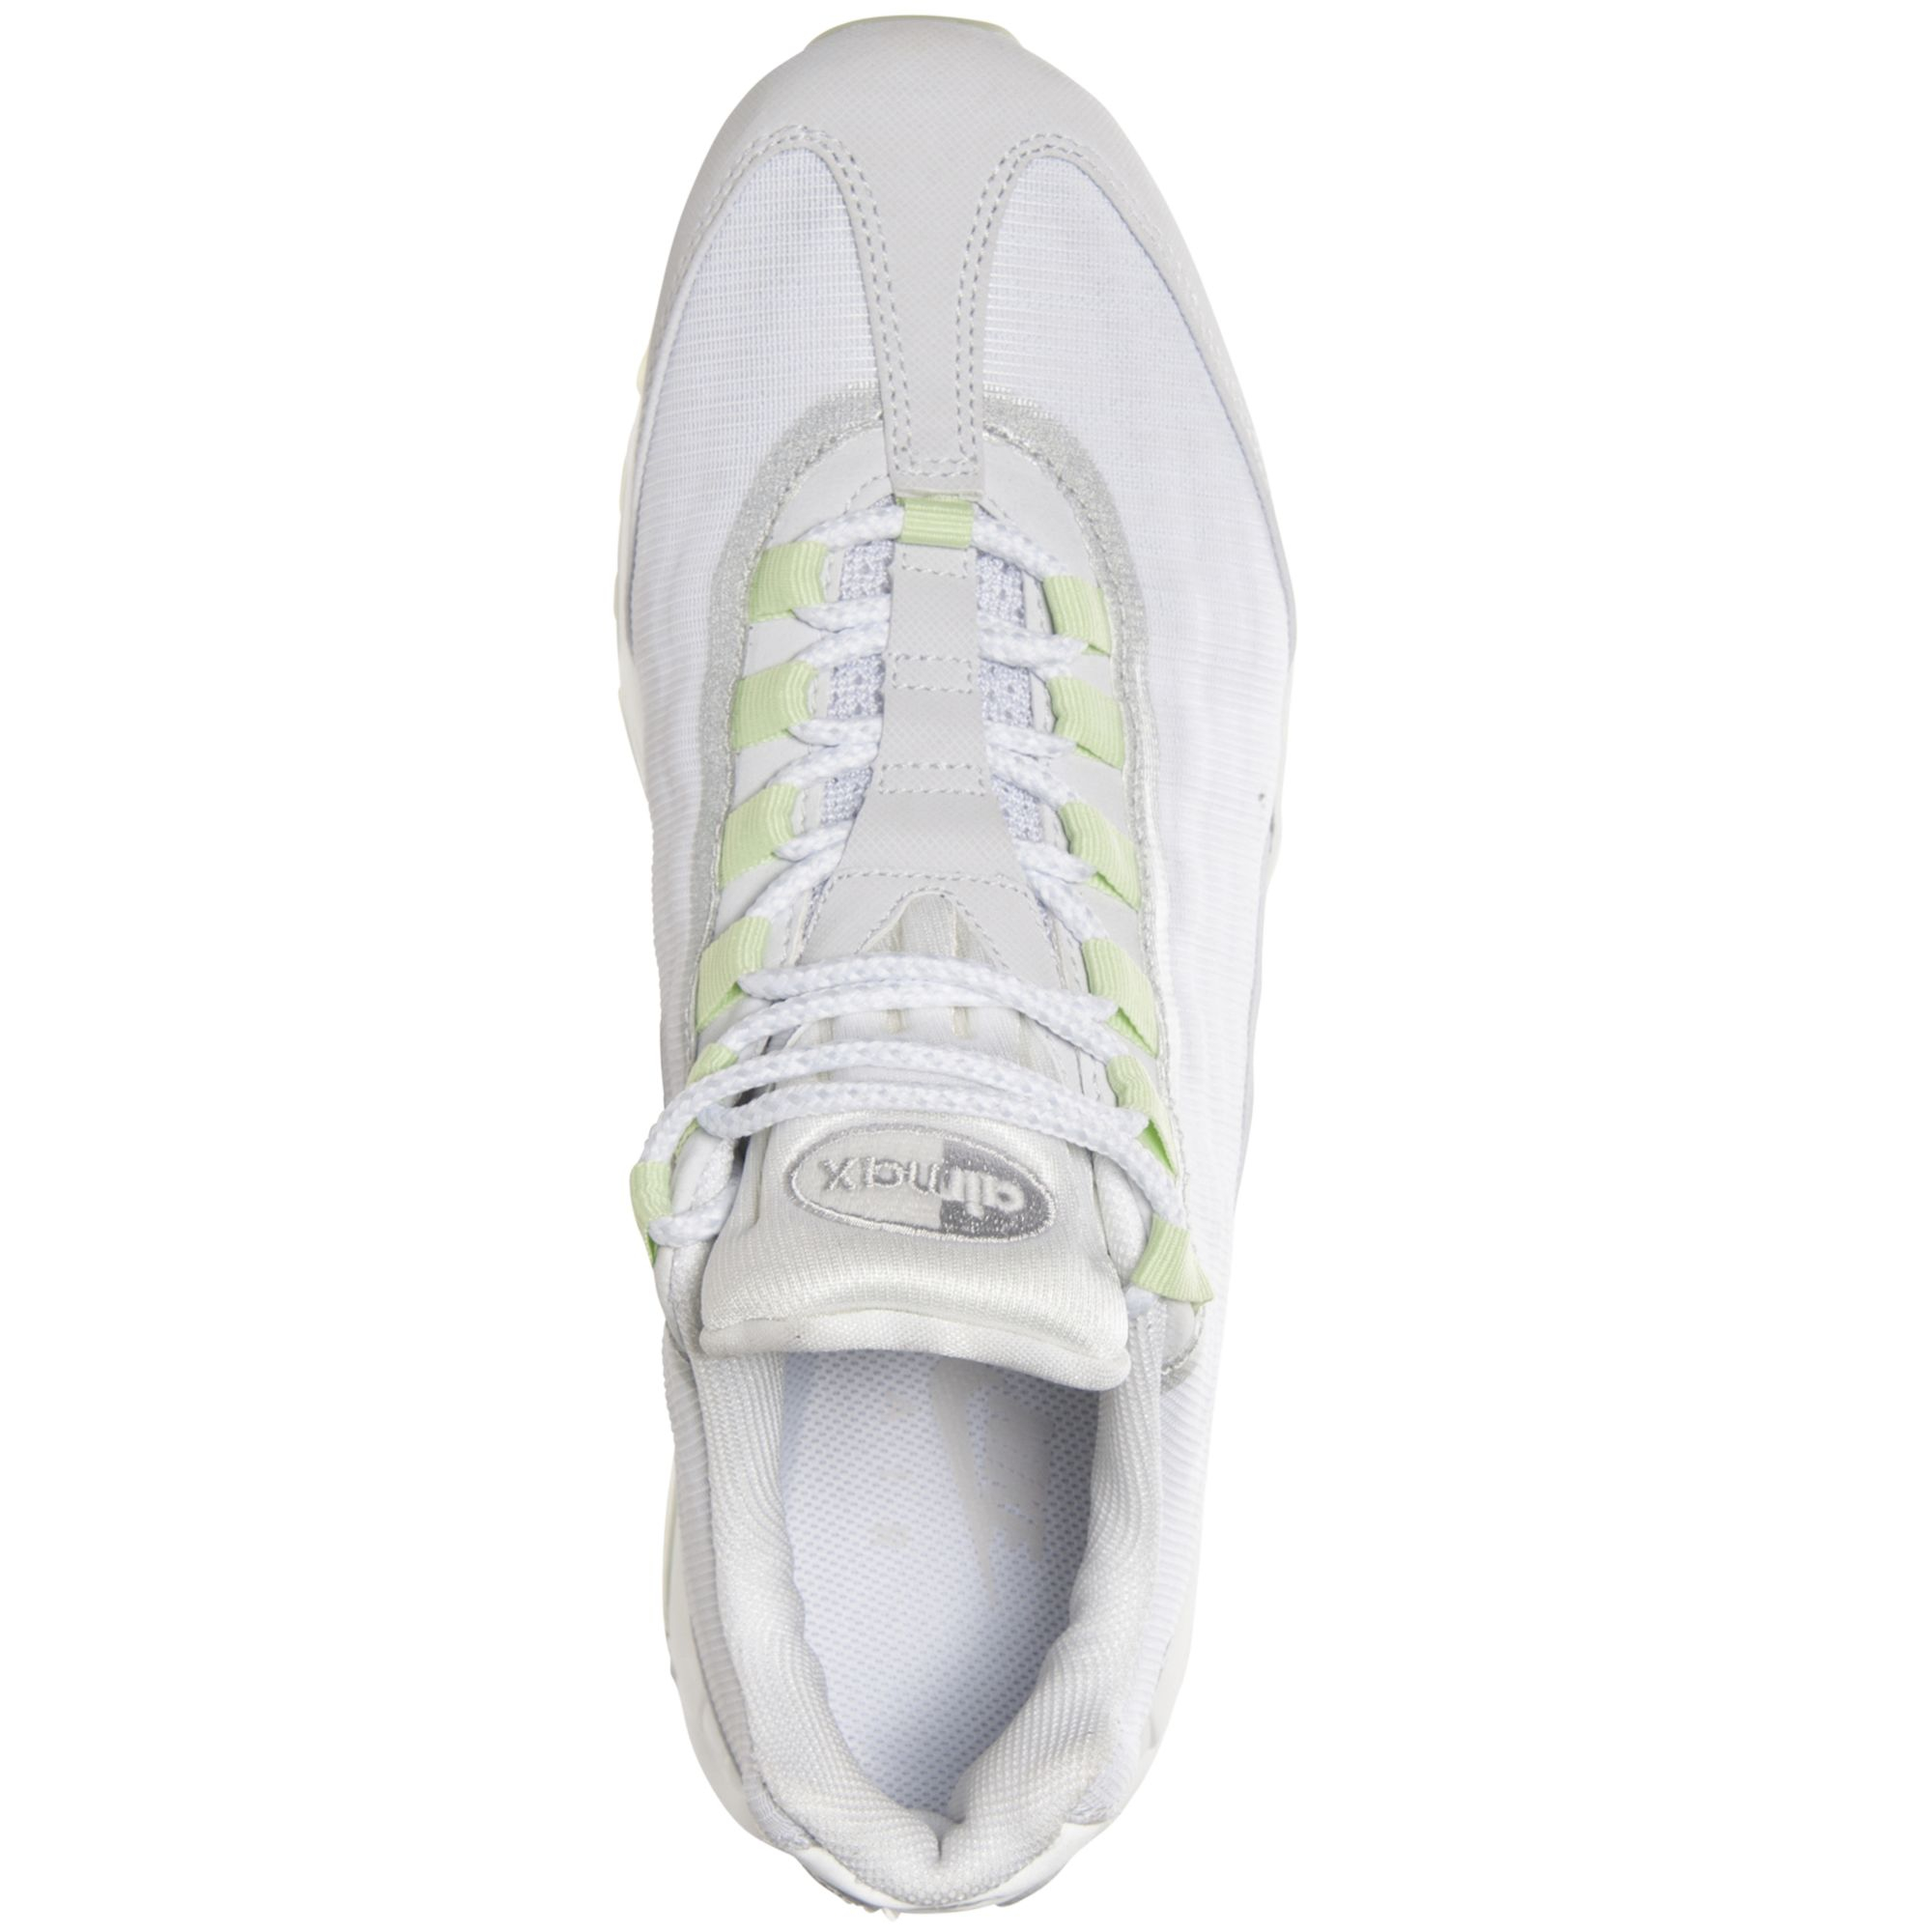 Cheap Nike air max 2015 wholesale Cheap Nike outlet Royal Ontario Museum